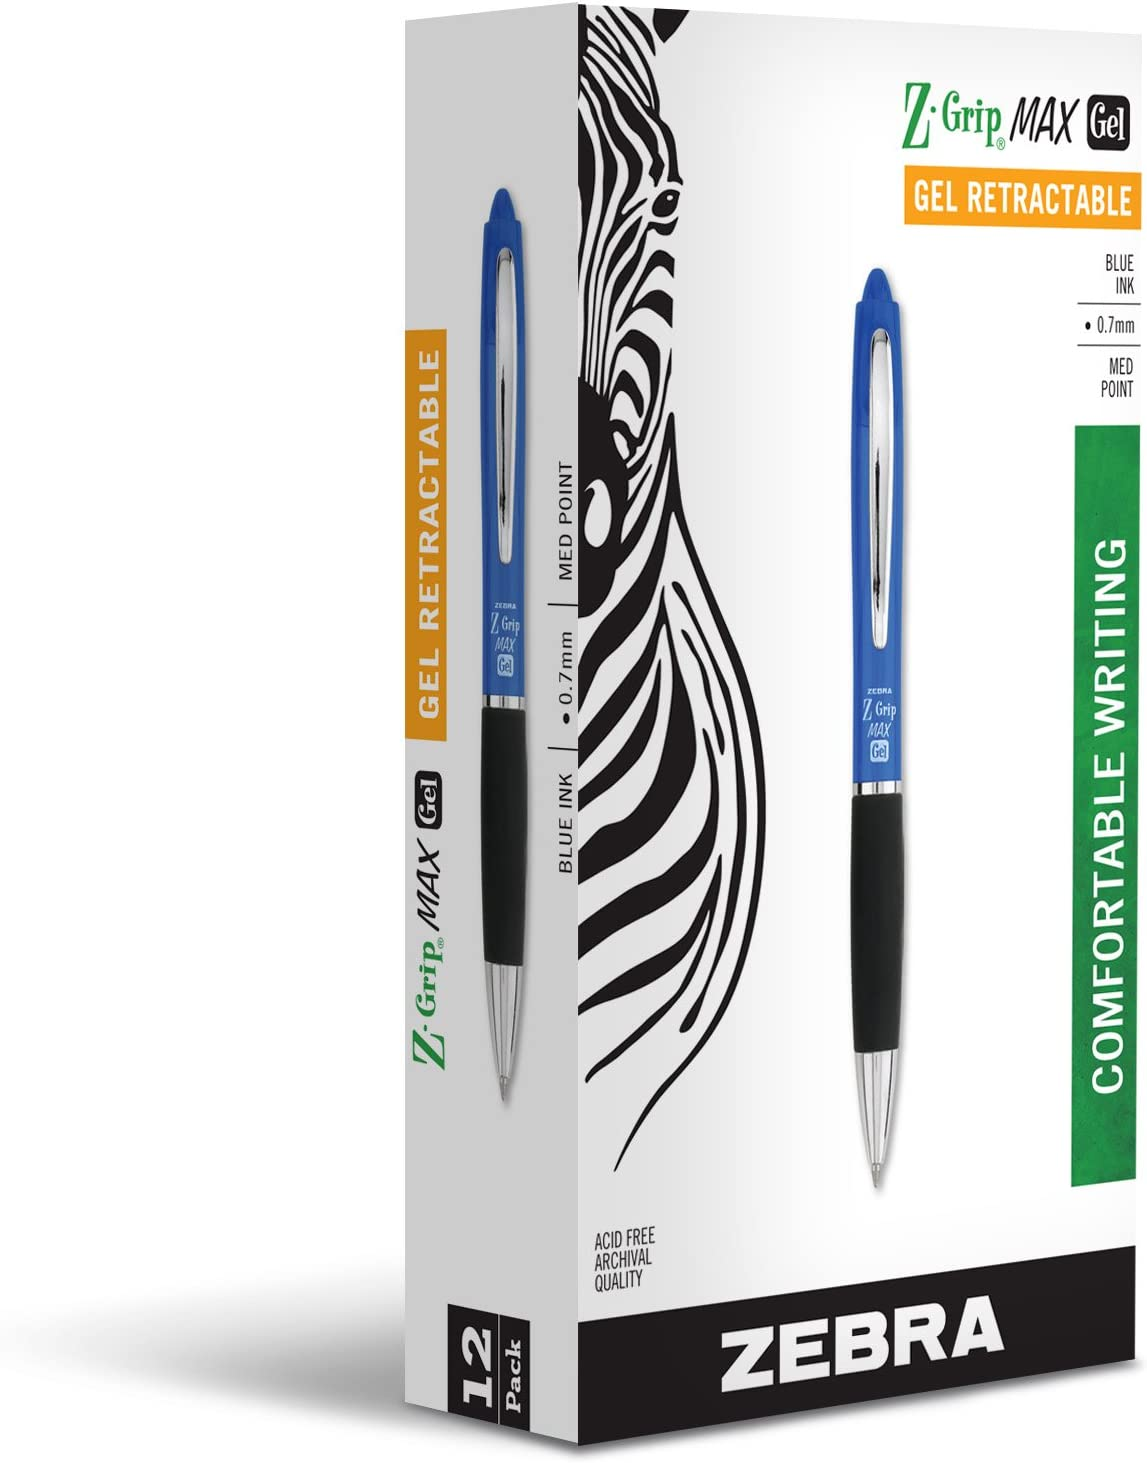 Zebra Z-Grip MAX Gel Retractable Ballpoint Rollerball Pen, Medium Point, 0.7mm, Blue, 12-Count